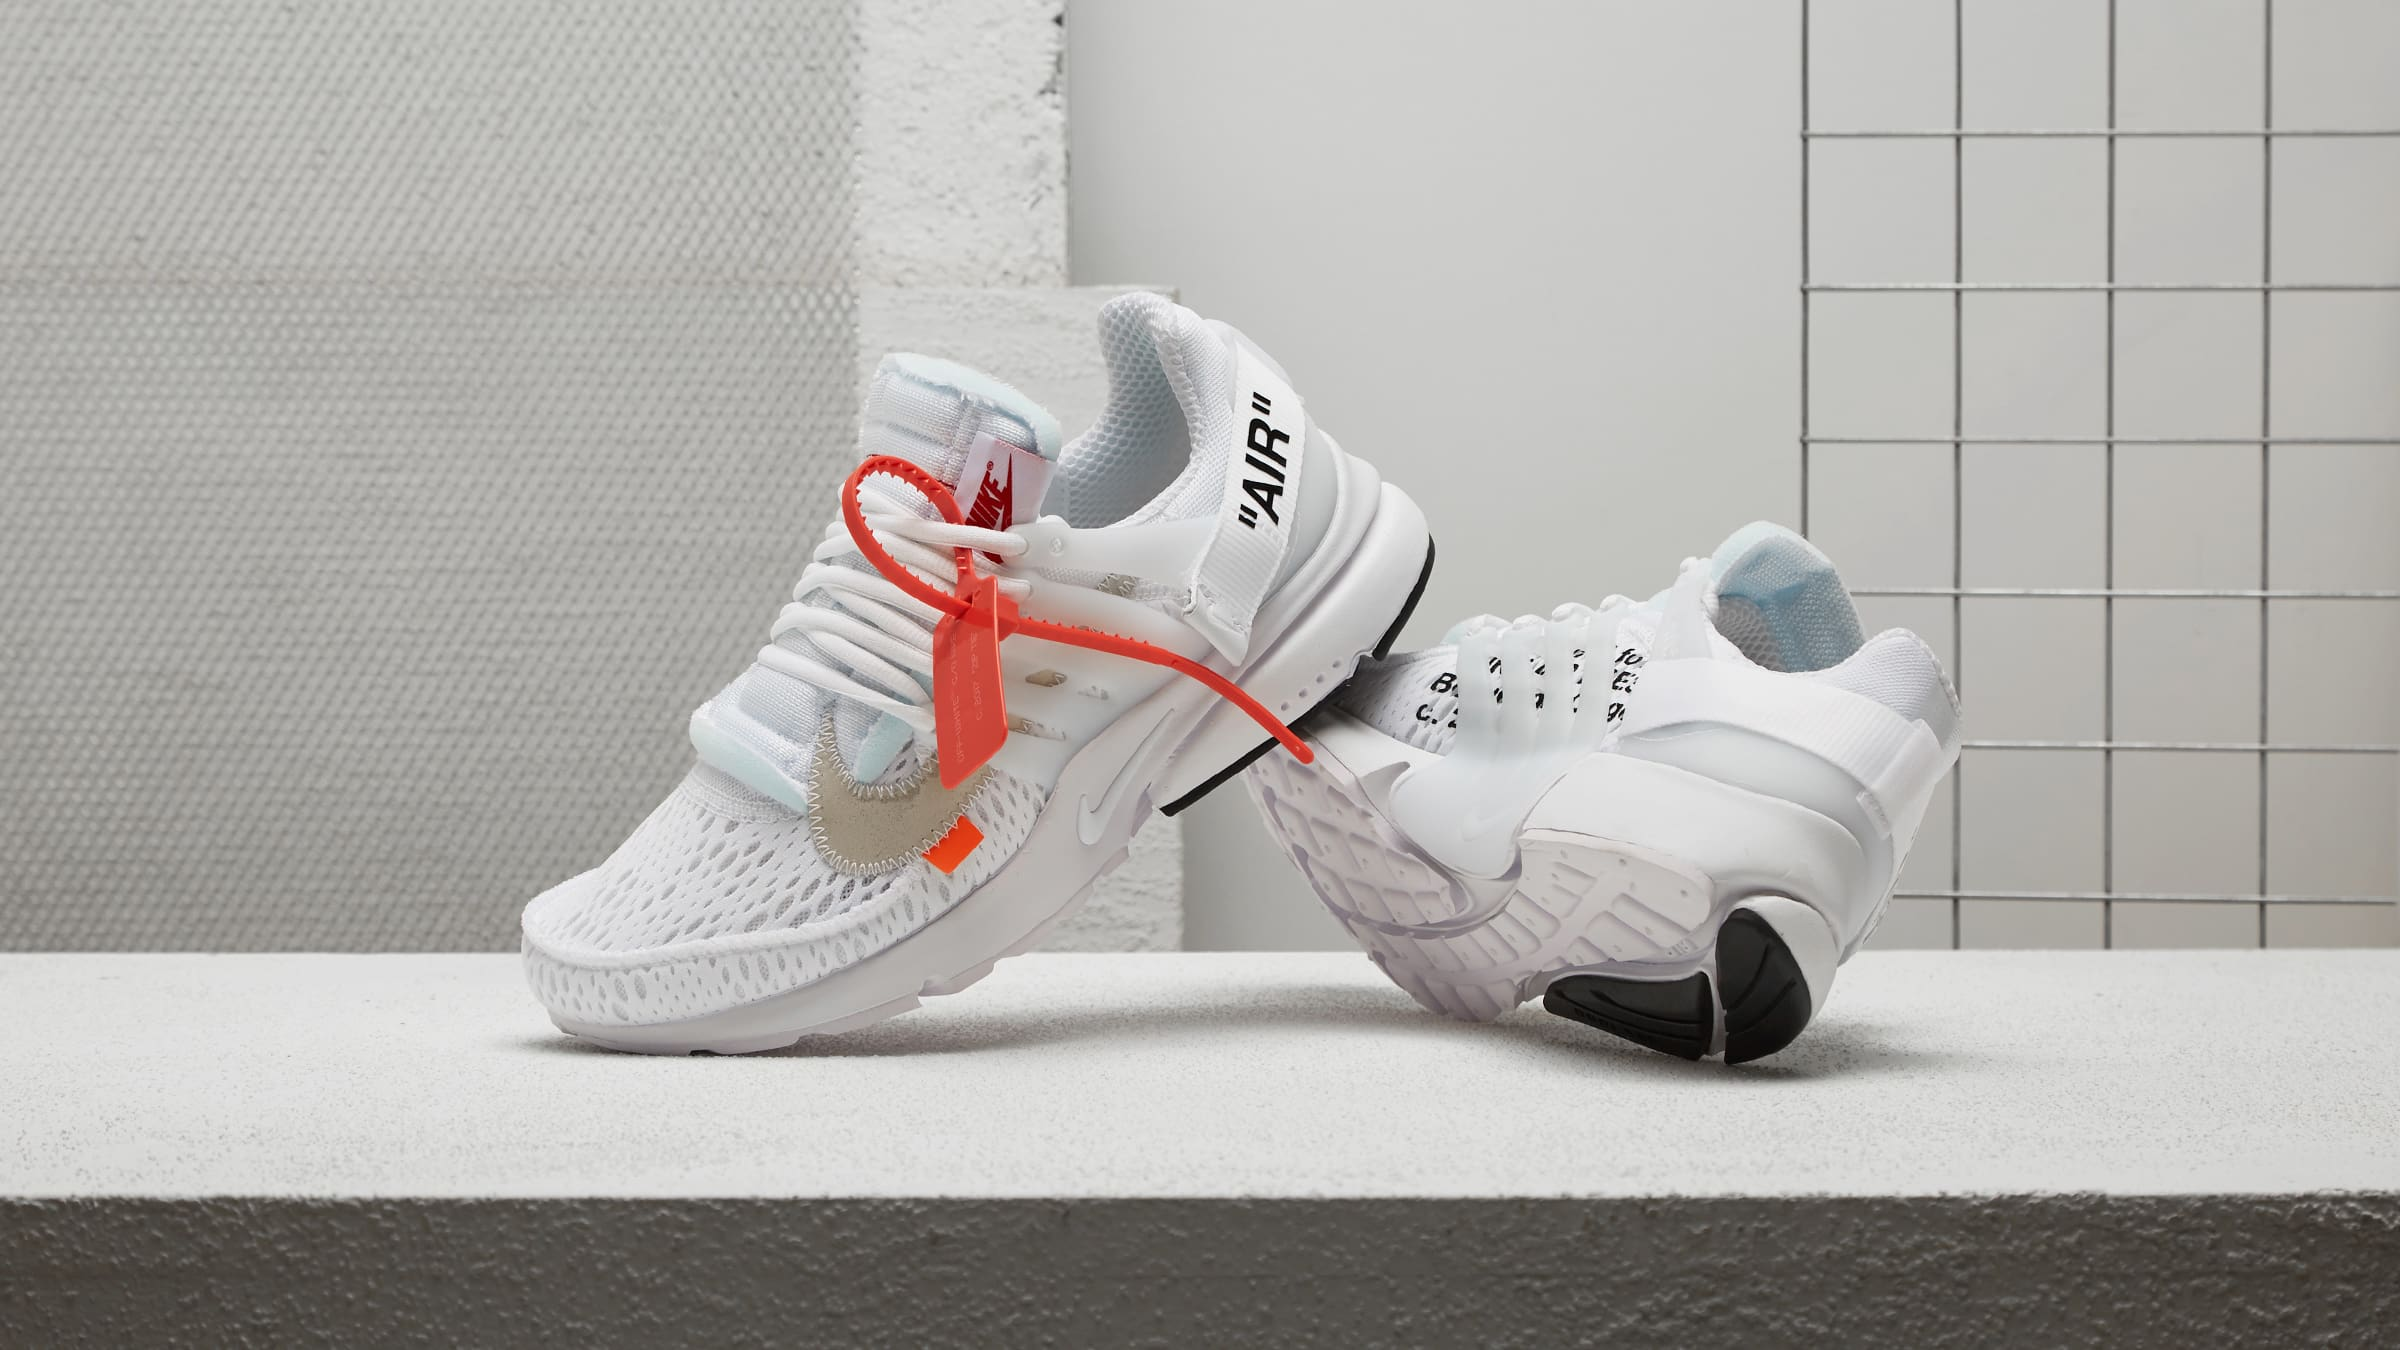 promo code fc507 e264b Nike and Virgil Abloh reissue The Ten  Nike Air Presto x Off-White in  striking monochrome. This maximalist take on the early 2000s icon features  additional ...